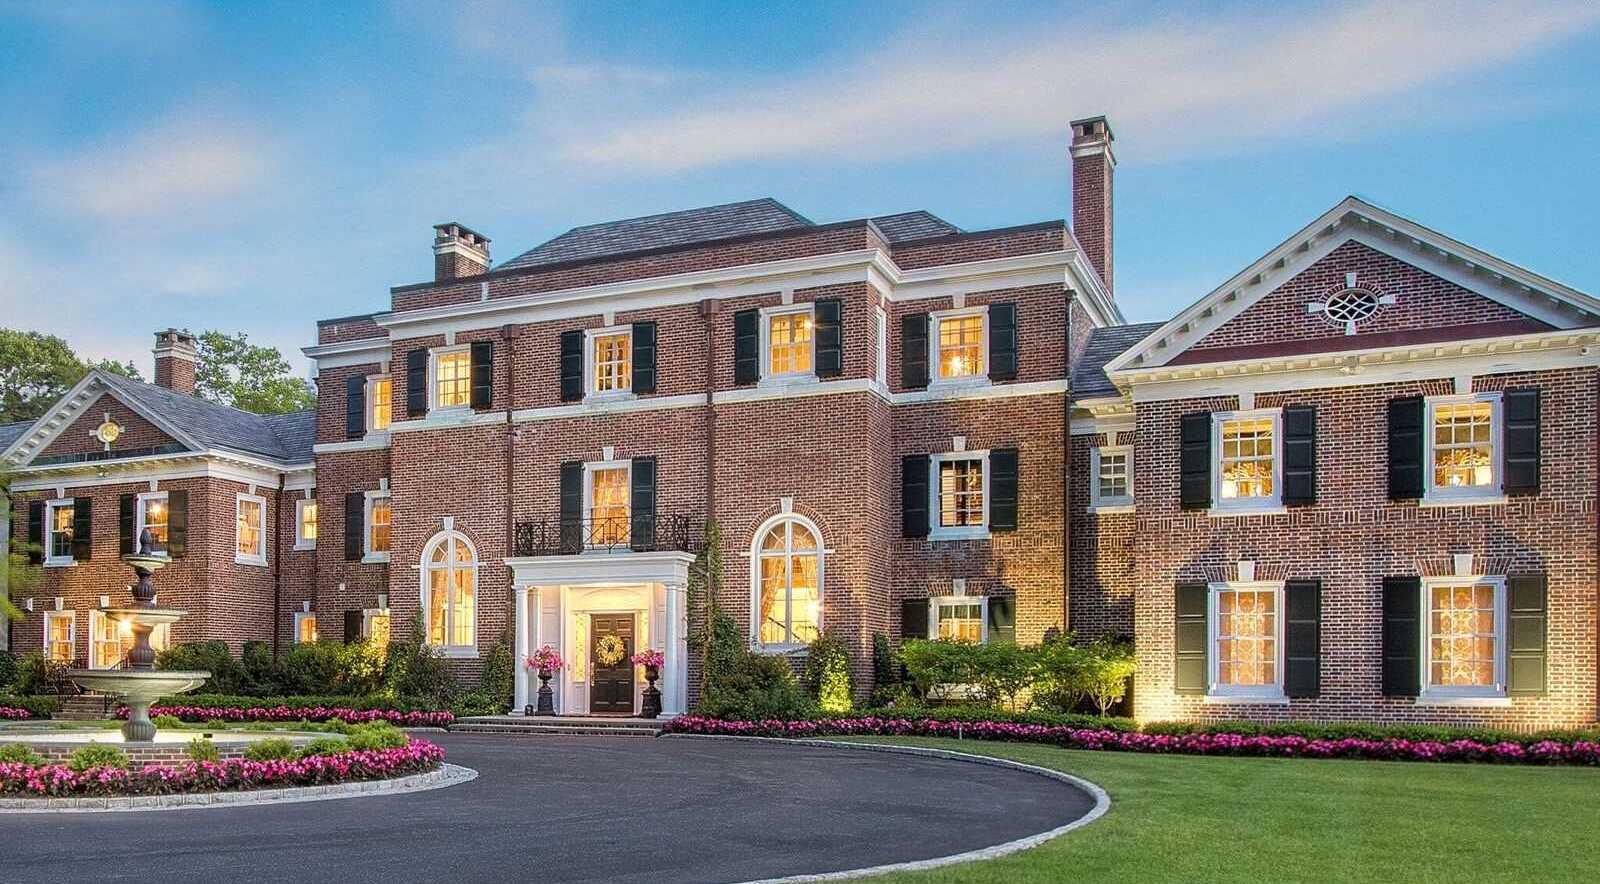 Historic 22,000 Sq. Ft. Georgian Colonial in Cold Spring Harbor Asks $9.8M (PHOTOS)